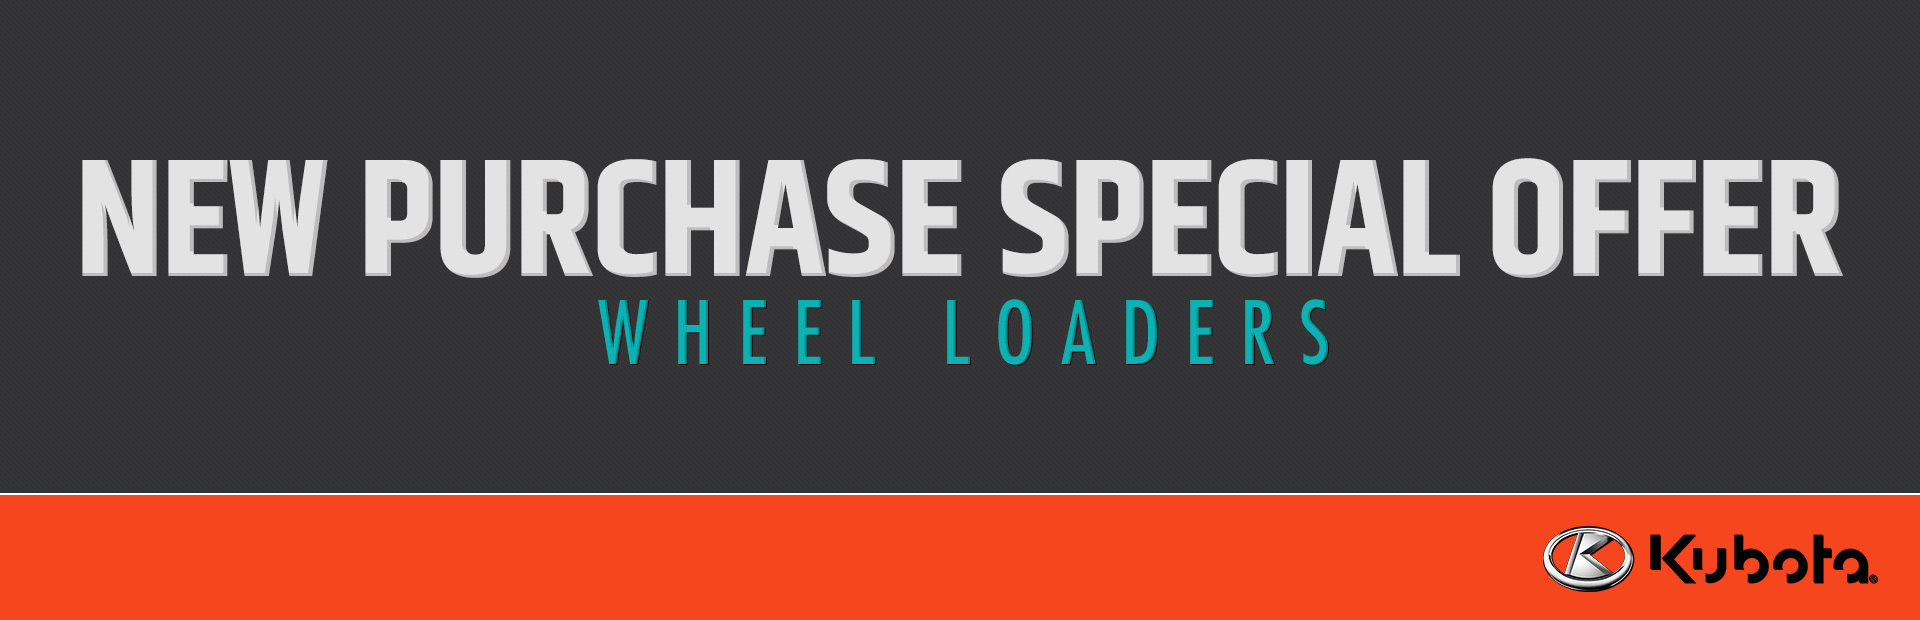 Kubota: New Purchase Special Offer - Wheel Loaders